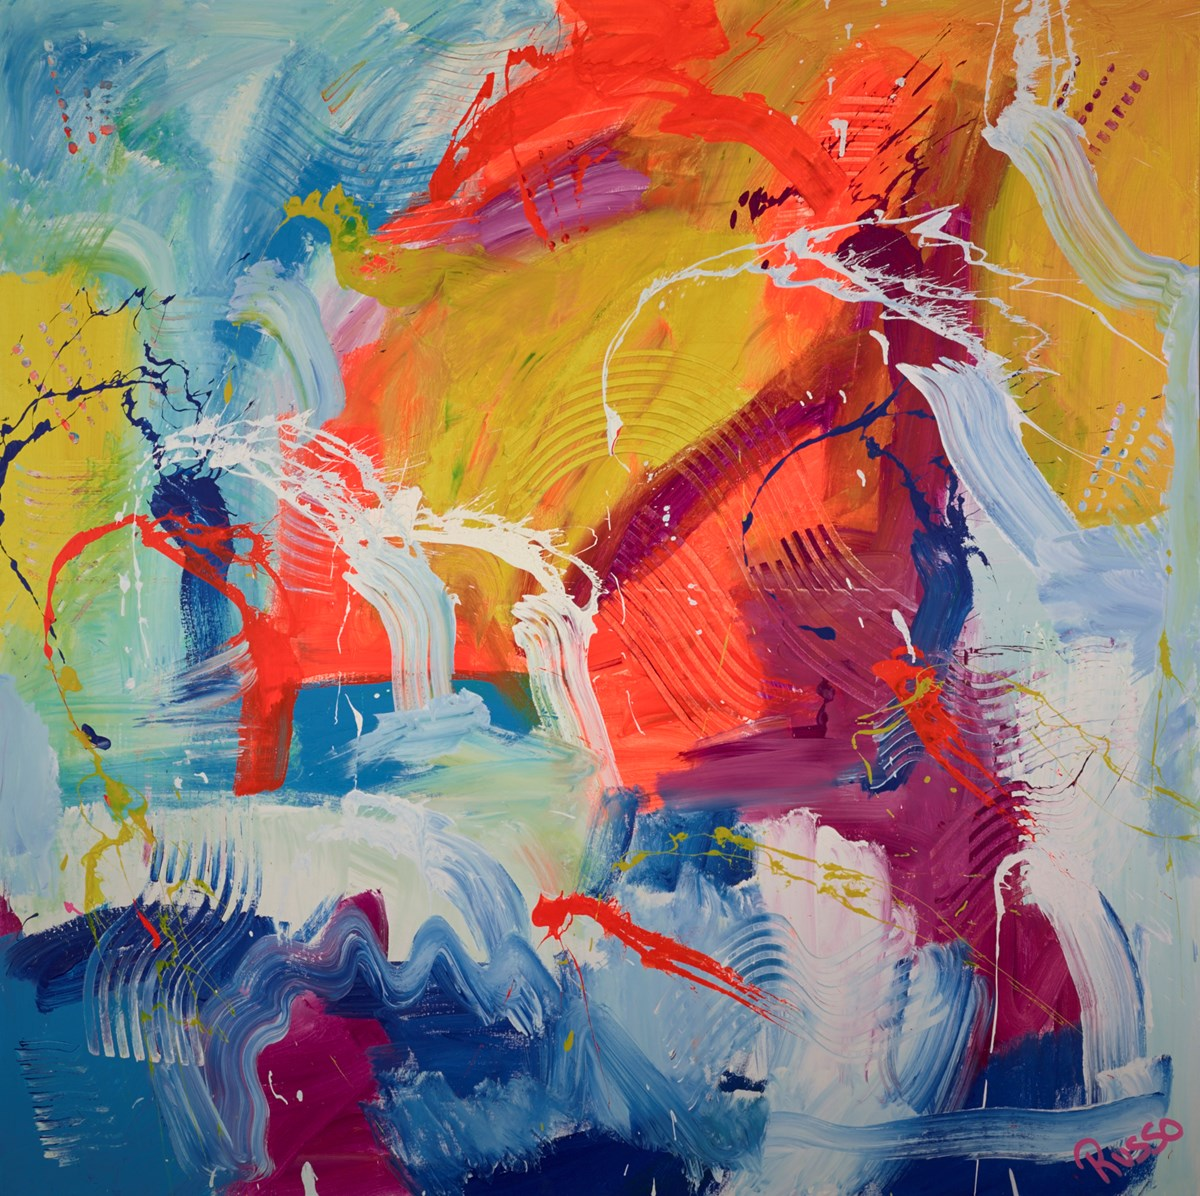 Positive Vibrations -Third World by antonio russo -  sized 64x64 inches. Available from Whitewall Galleries